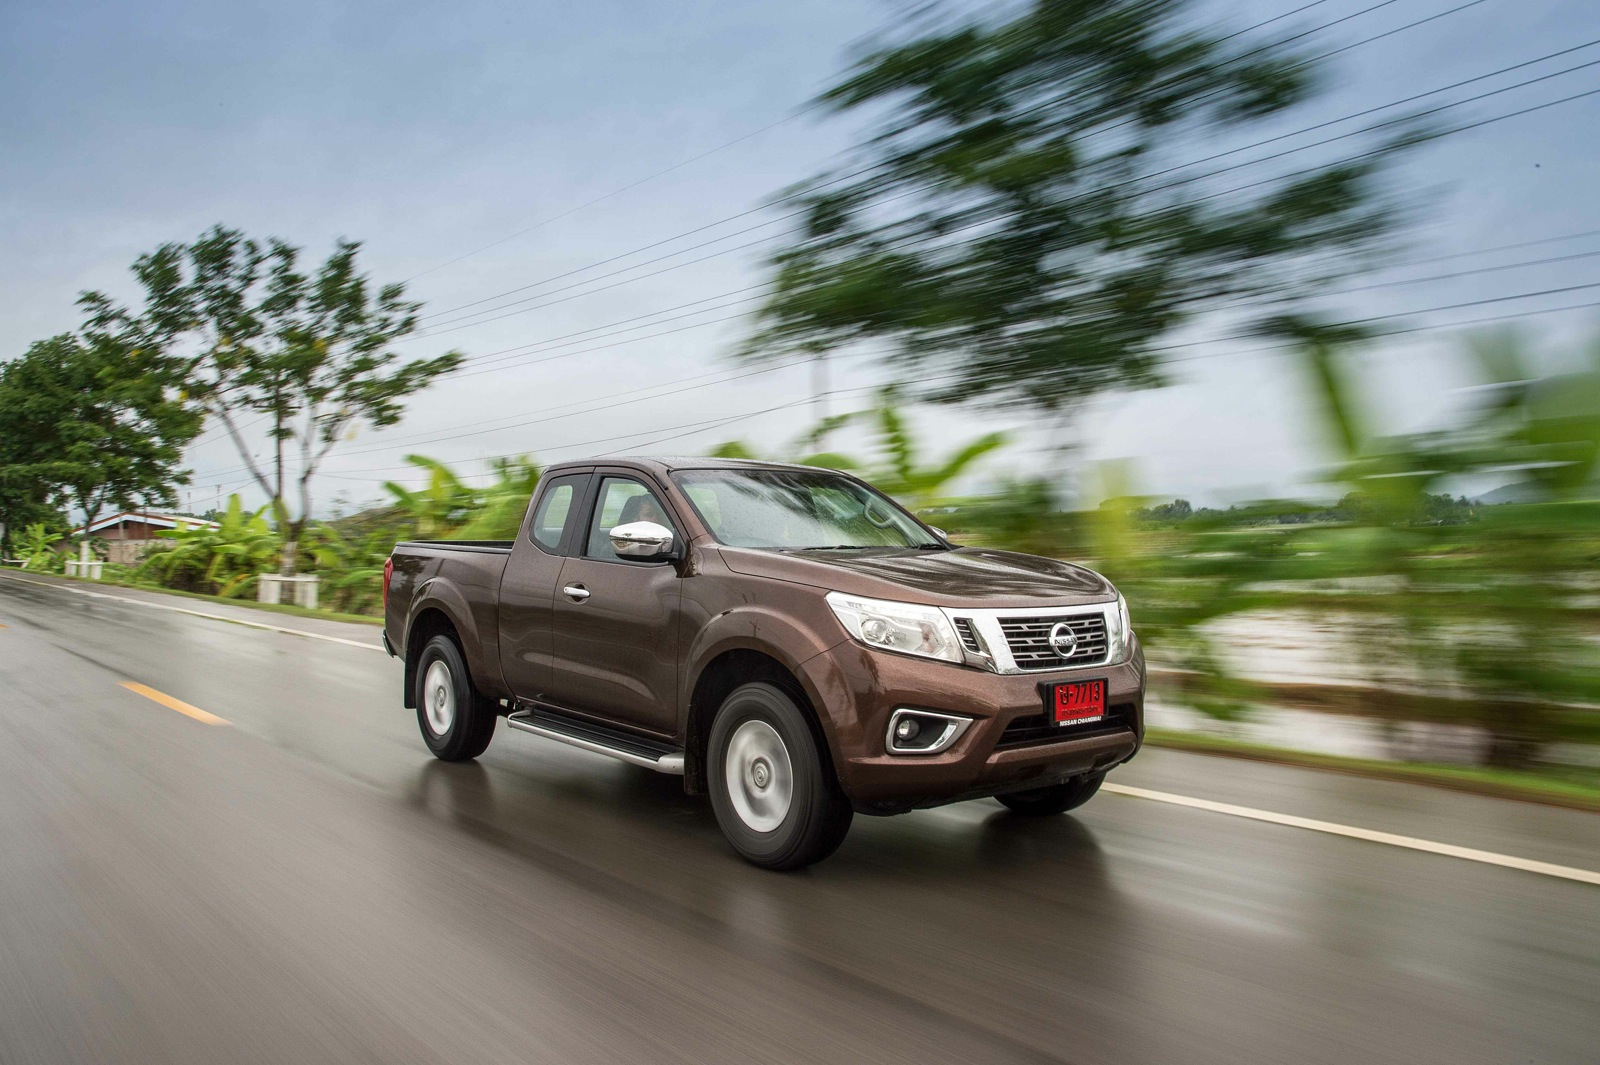 New 2015 Nissan Navara Review  CarAdvice